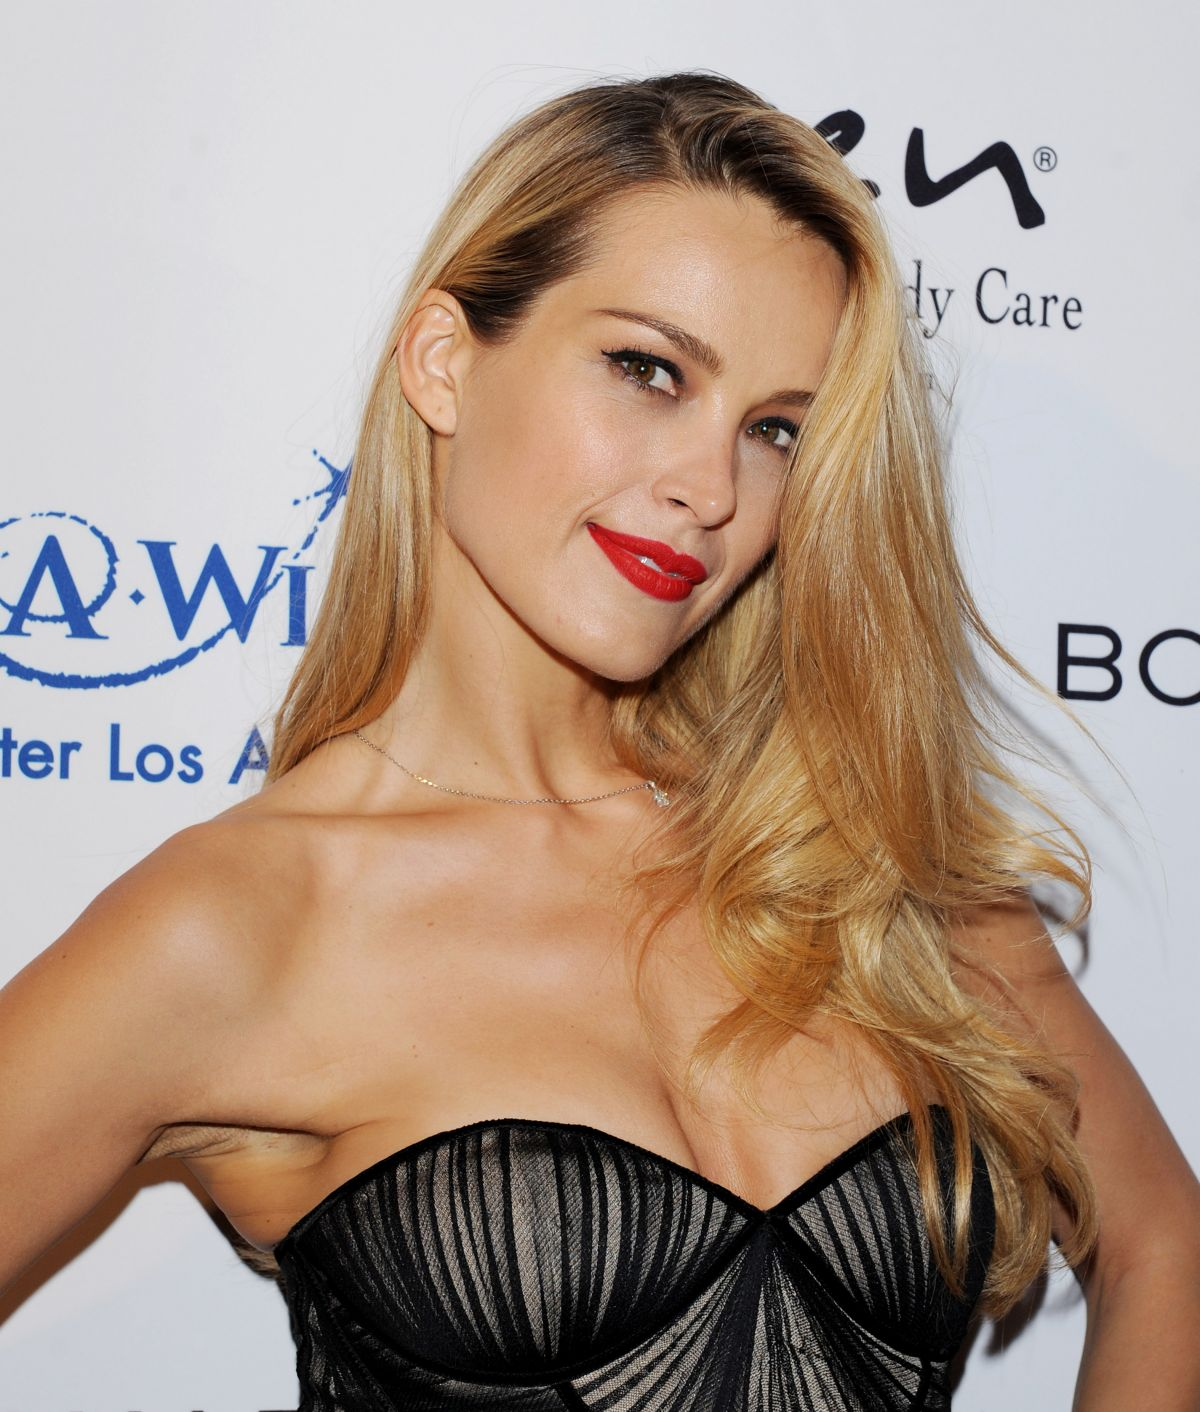 Petra Nemcova At Make-A-Wish Greater Los Angeles Fashion Fundraiser in Hollywood